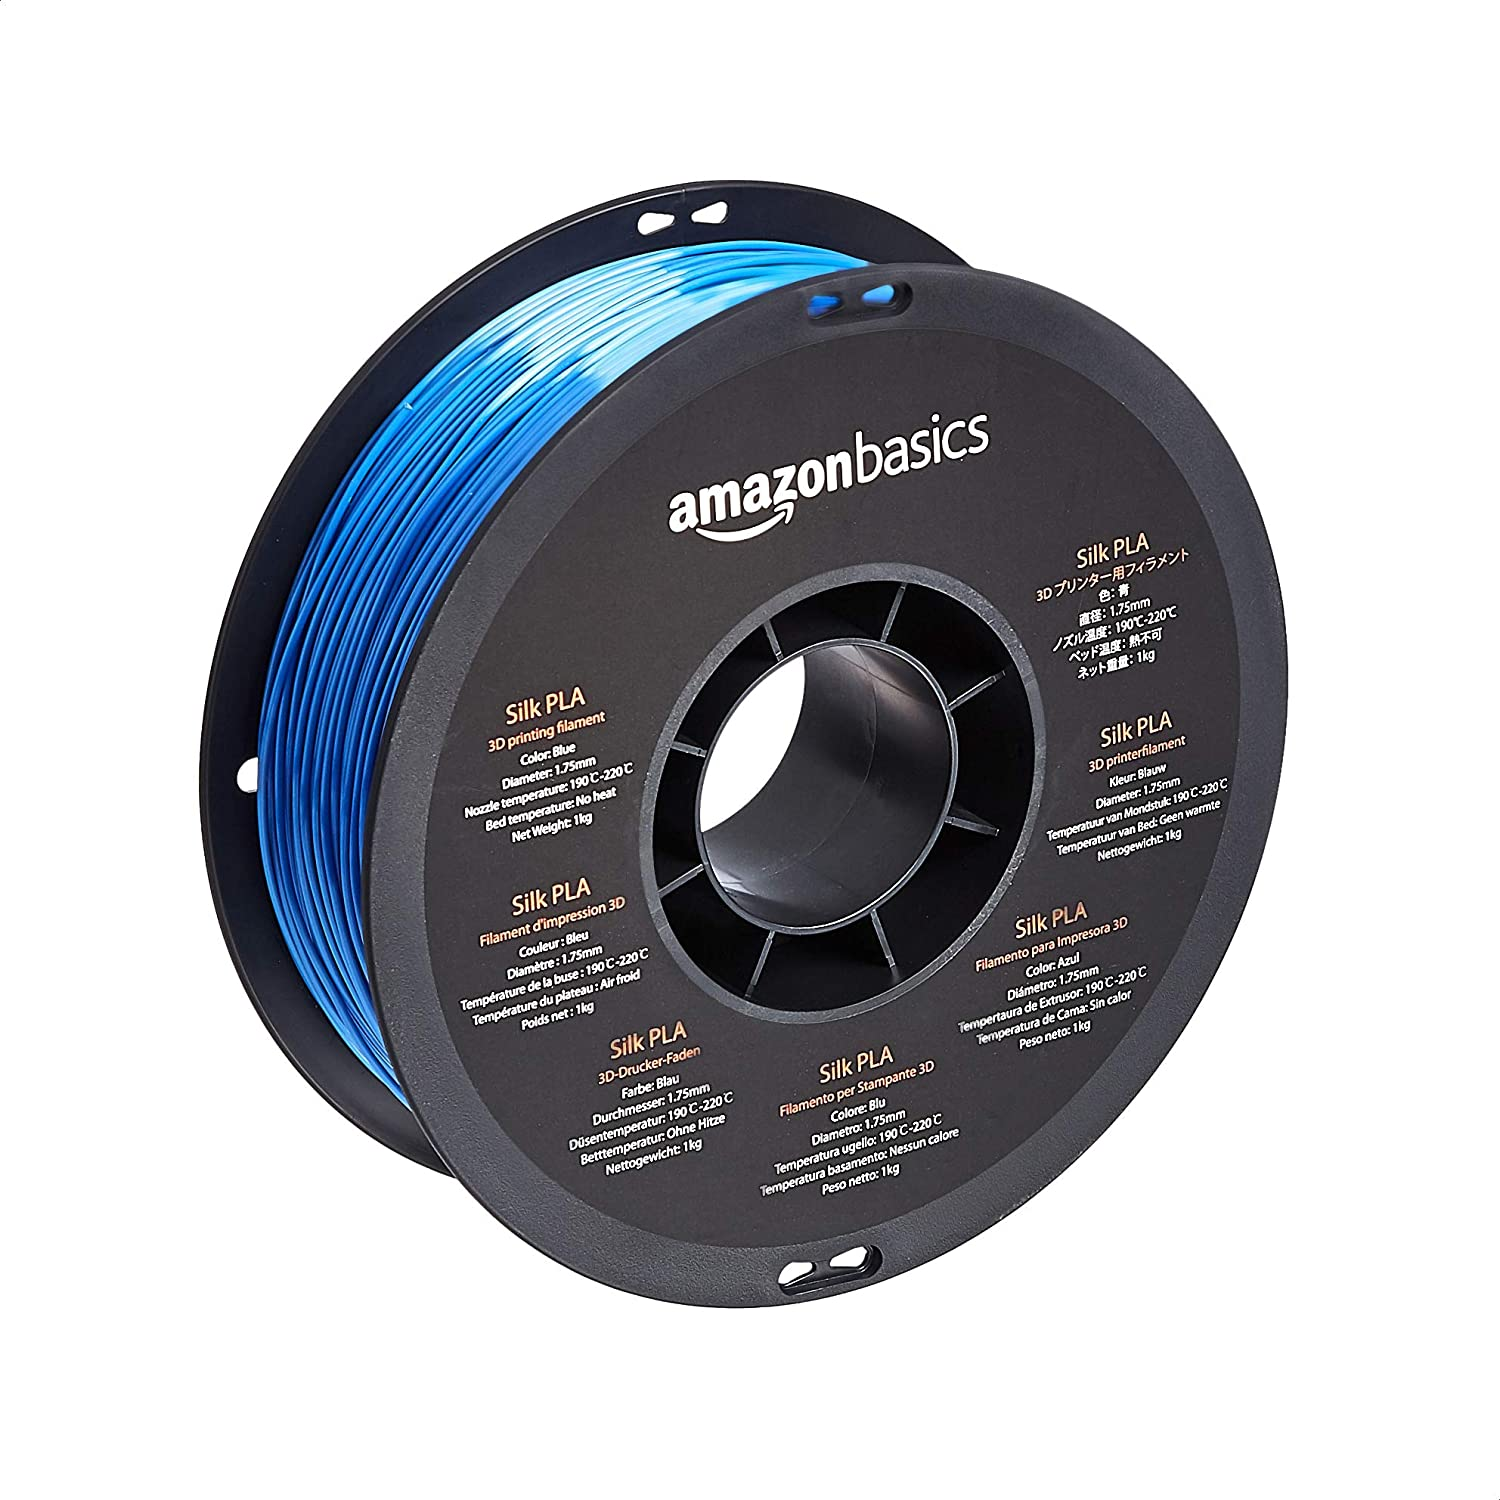 Amazon Basics SILK PLA 3D Printer Filament, 1.75mm, Blue, 1 kg Spool (2.2 lbs)